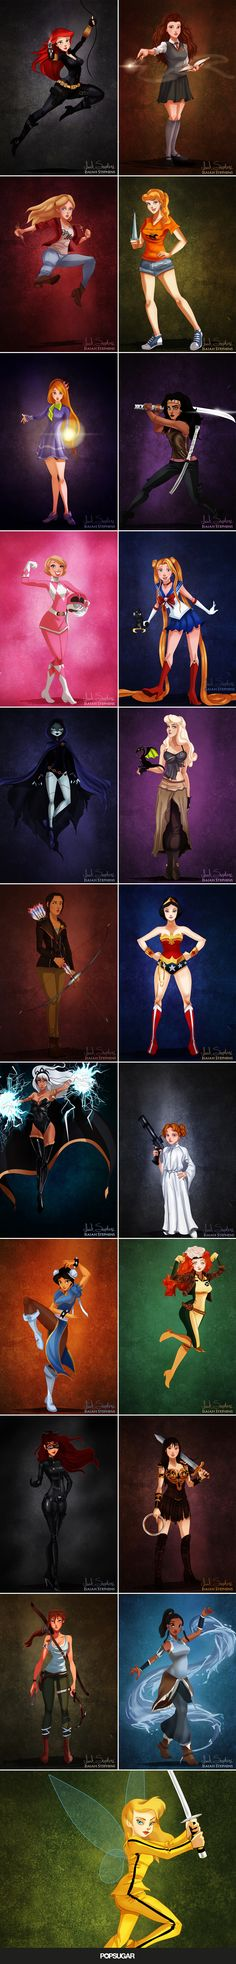 See Disney characters dressed in Halloween costumes